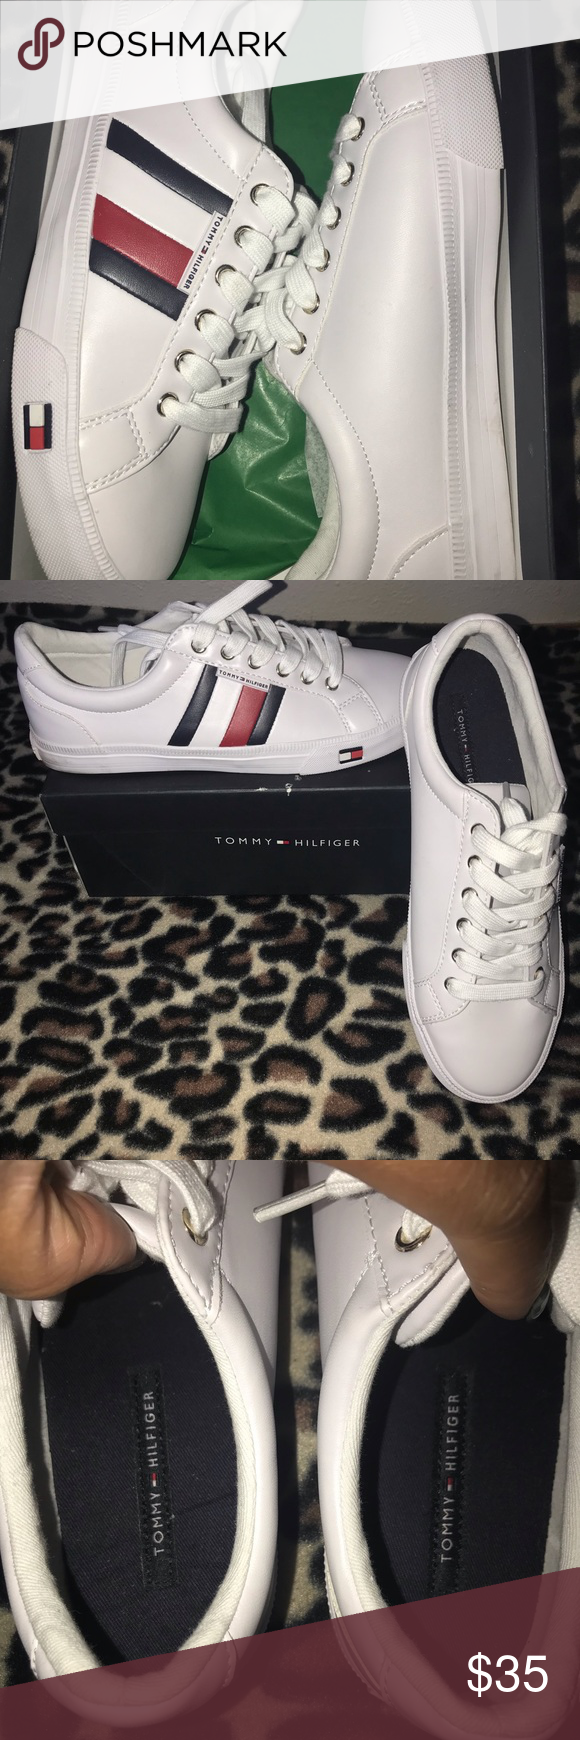 9e62af837e13 Women s Tommy Hilfiger Lightz Sneakers - 8 Used - Only worn 1 time (to a  event) they have been in my closet ever since Women shoes size 8 Faux  Leather ...